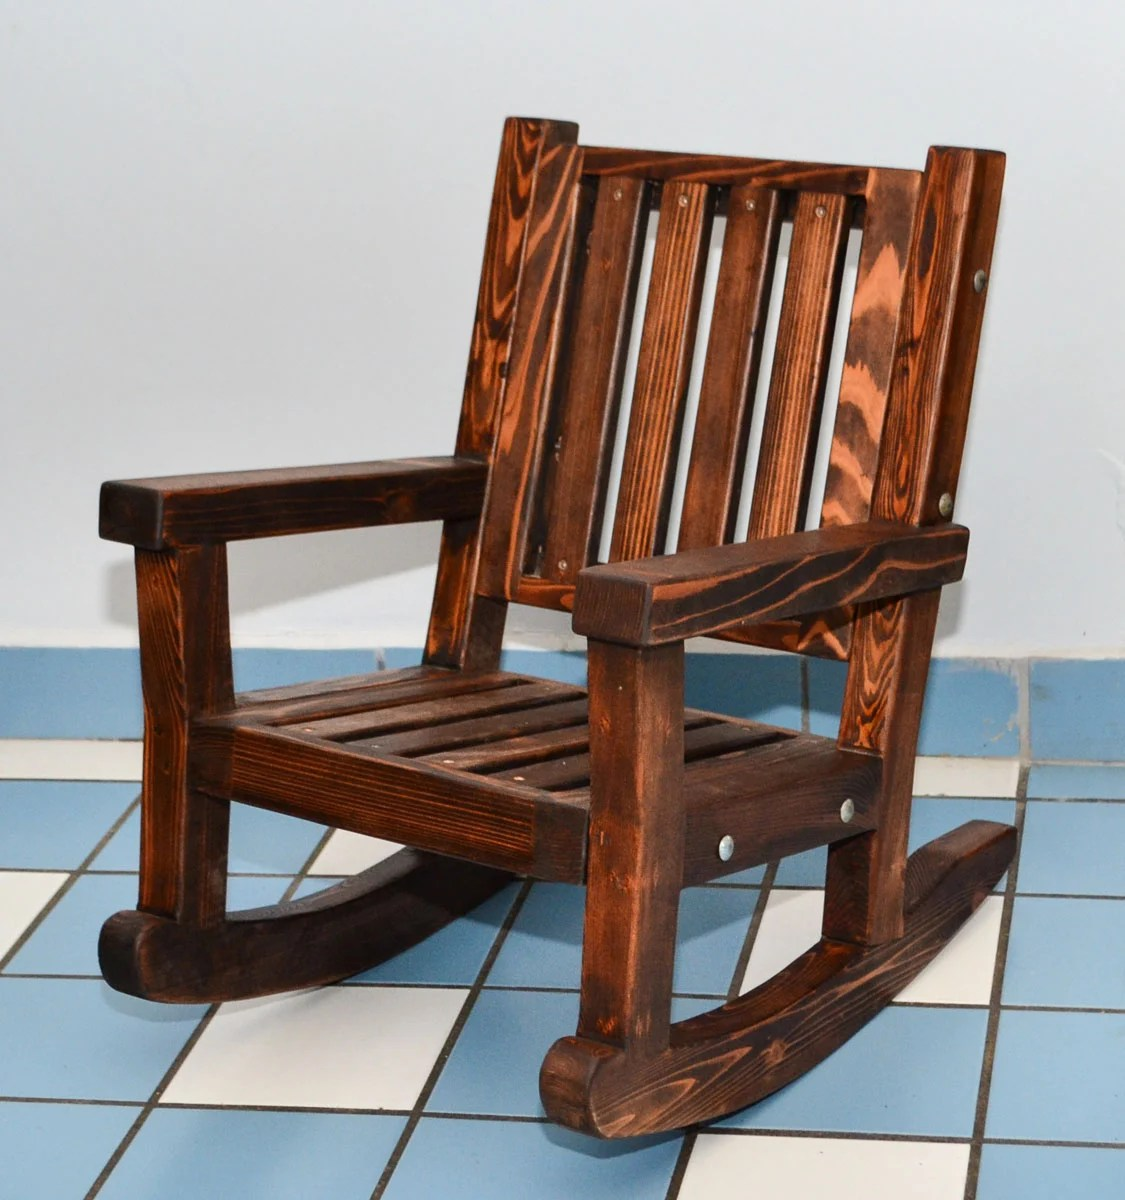 Child Wooden Rocking Chair Kids Wooden Rocking Chair Sturdy Redwood Kids Chair